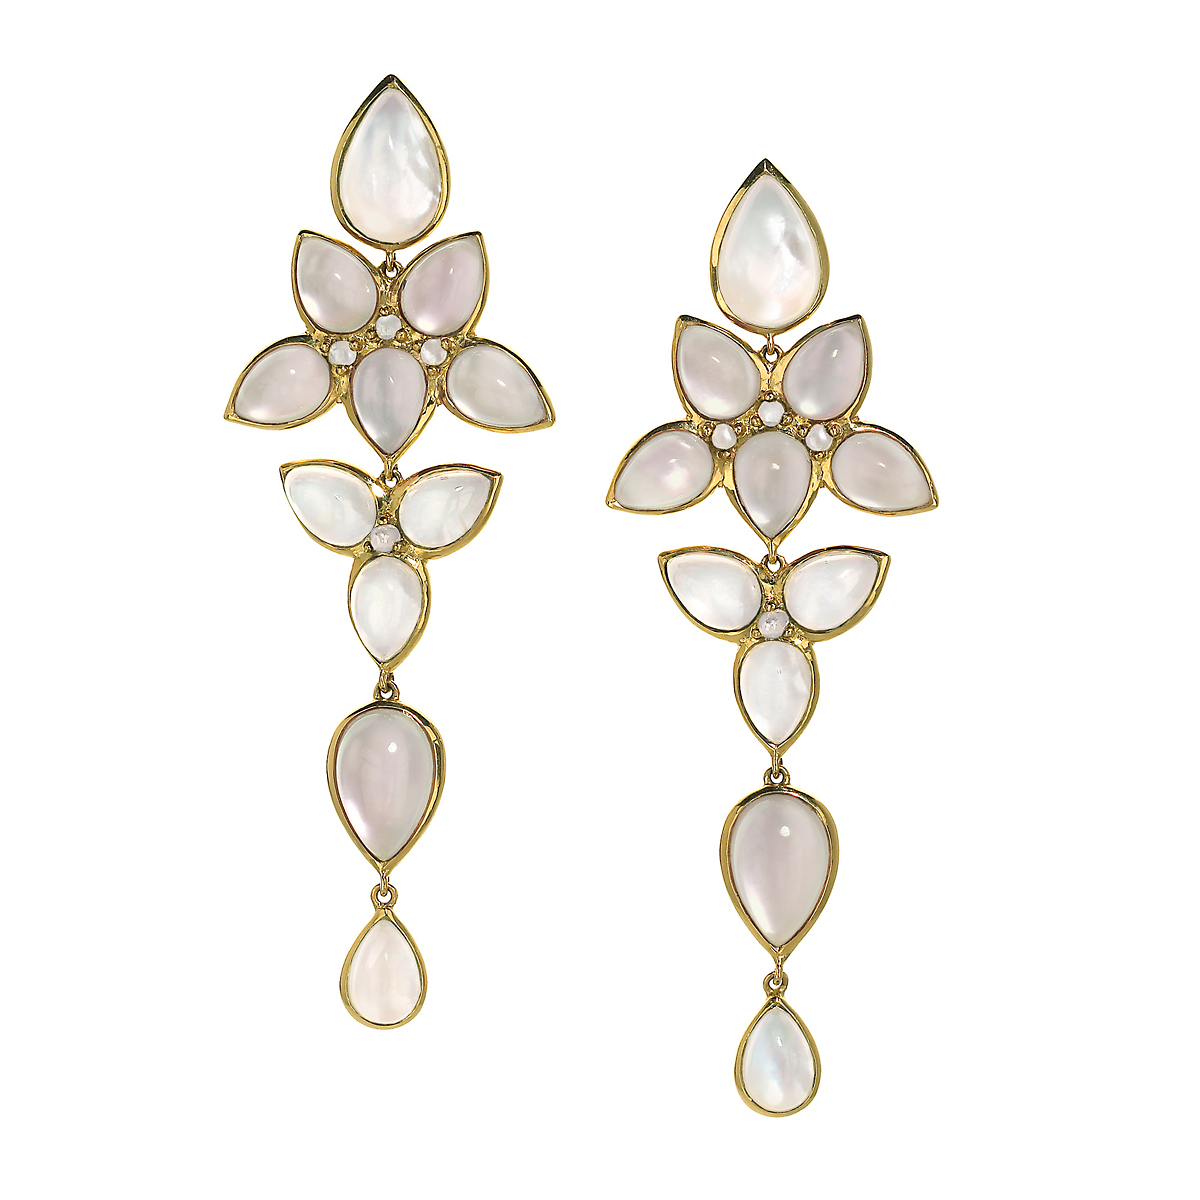 Elizabeth Showers Milky Quartz Over Mother of Pearl Mariposa Chandelier Earrings